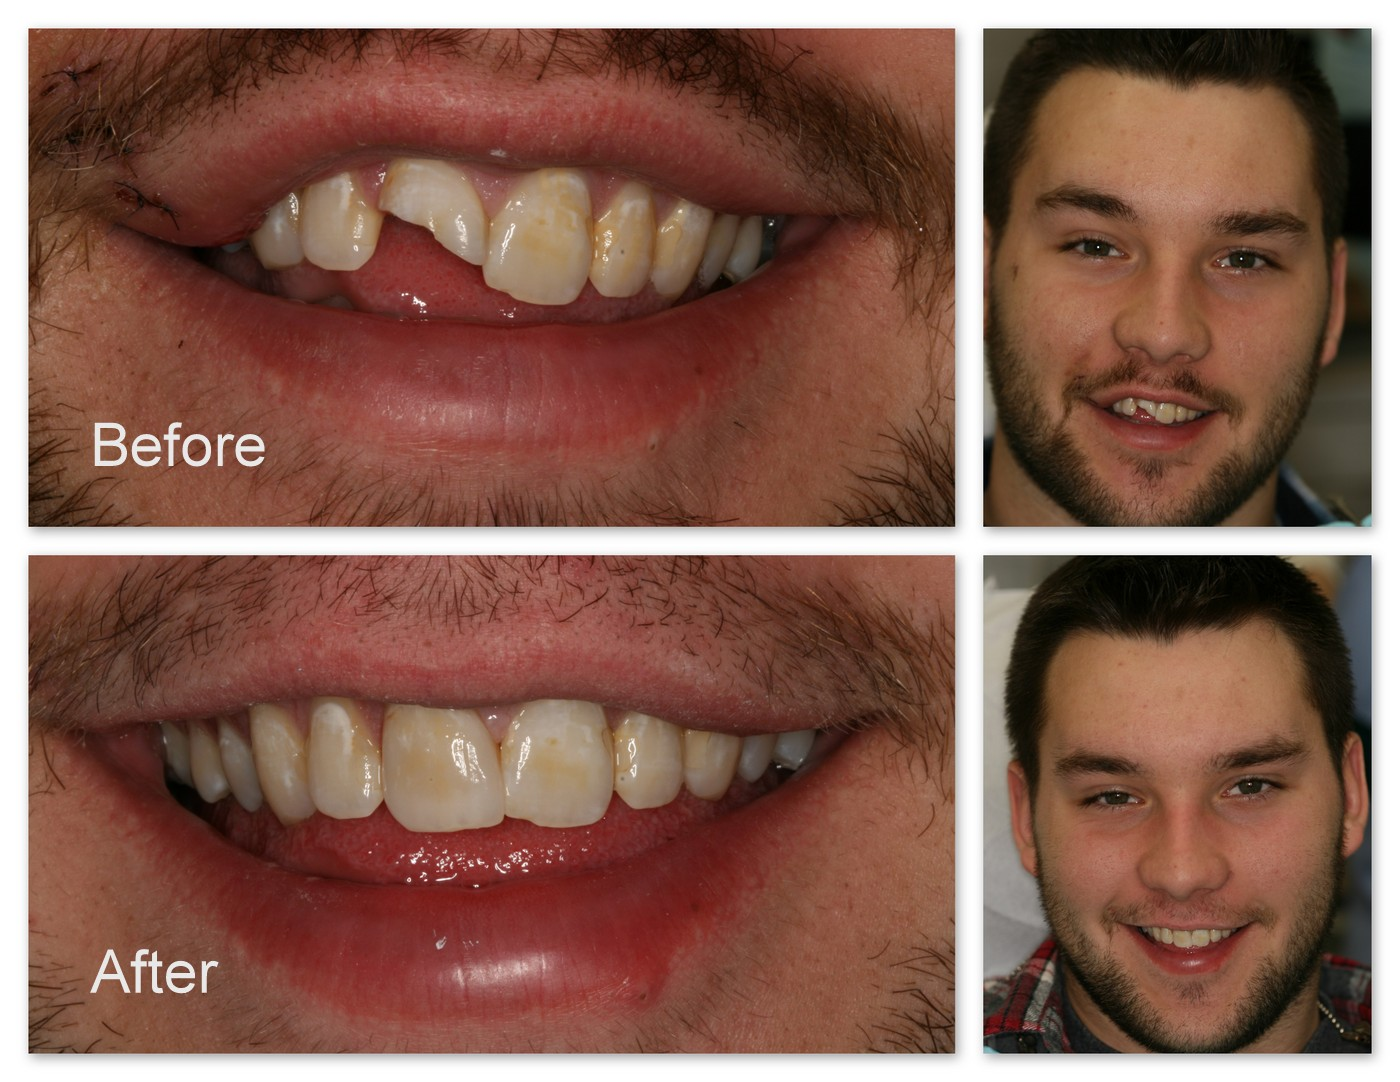 Before- This young man was in an accident which caused the fracture of his front teeth. After- Dr. Jack Hosner of Portage, MI restored this tooth with a porcelain crown which was custom stained to match his other natural teeth.